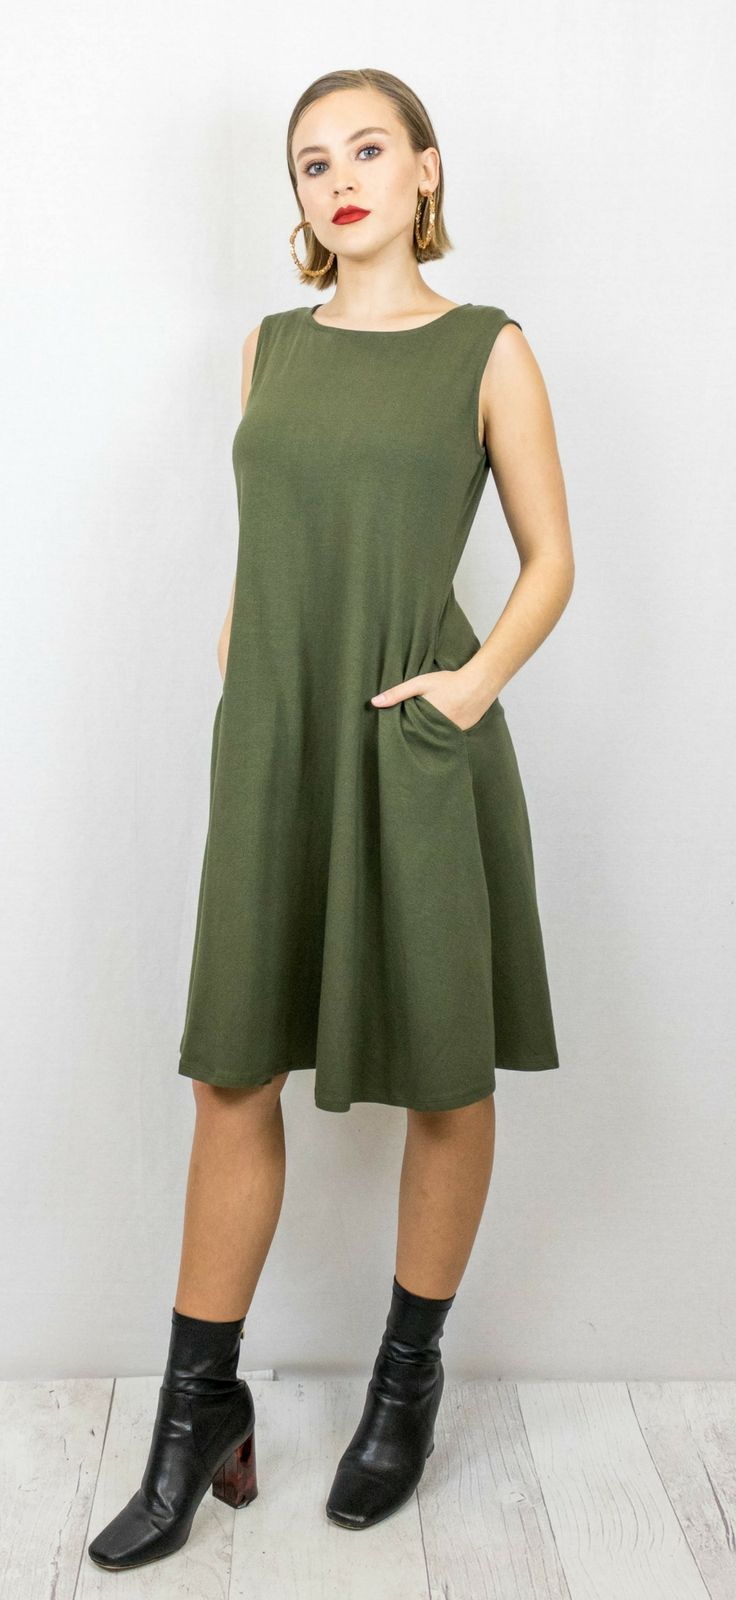 Tank Fit and Flare Dress with Pockets $30.00 // grey, olive, loose, flowy, tshirt dress, The Copper Closet, fashion, boutique, clothing, affordable, style, woman's fashion, women fashion, online shopping, shopping, clothes, girly, boho, comfortable, cheap, trendy, outfit, outfit inspo, outfit inspiration, ideas, Jacksonville, Gainesville, Tallahassee Florida, photo shoot, look book